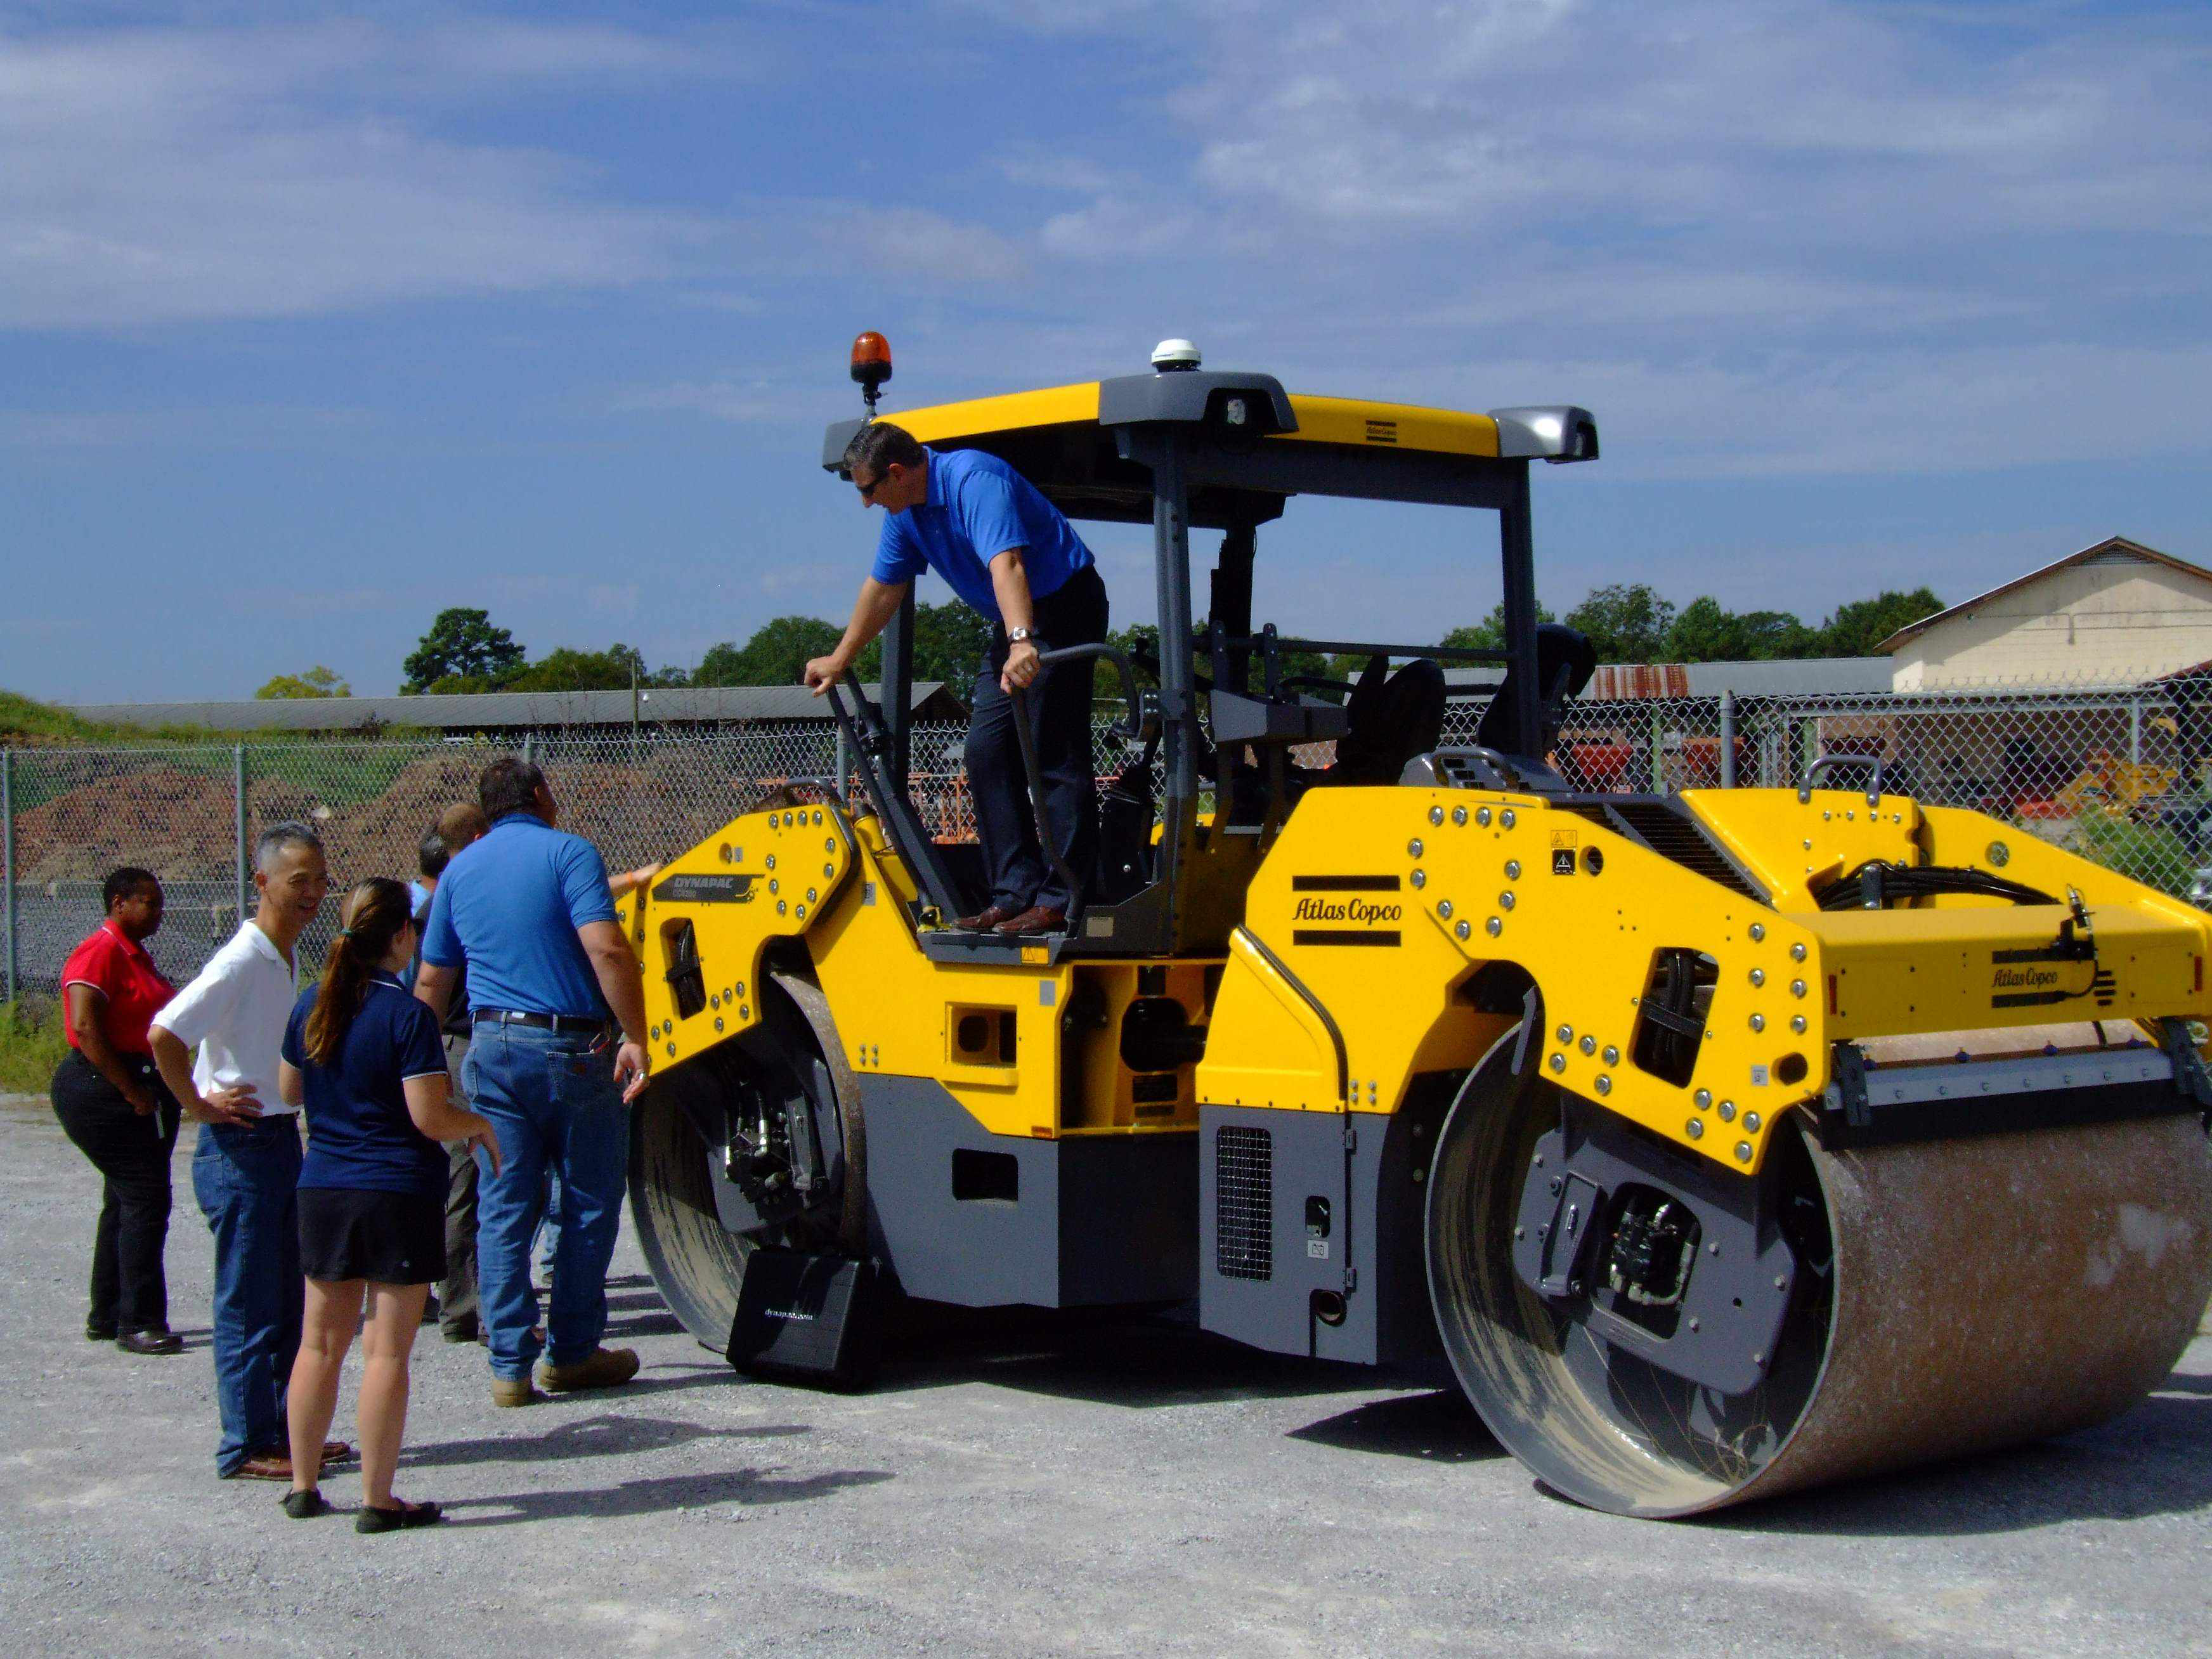 PHOTOS: FHWA intelligent compaction demonstration, open